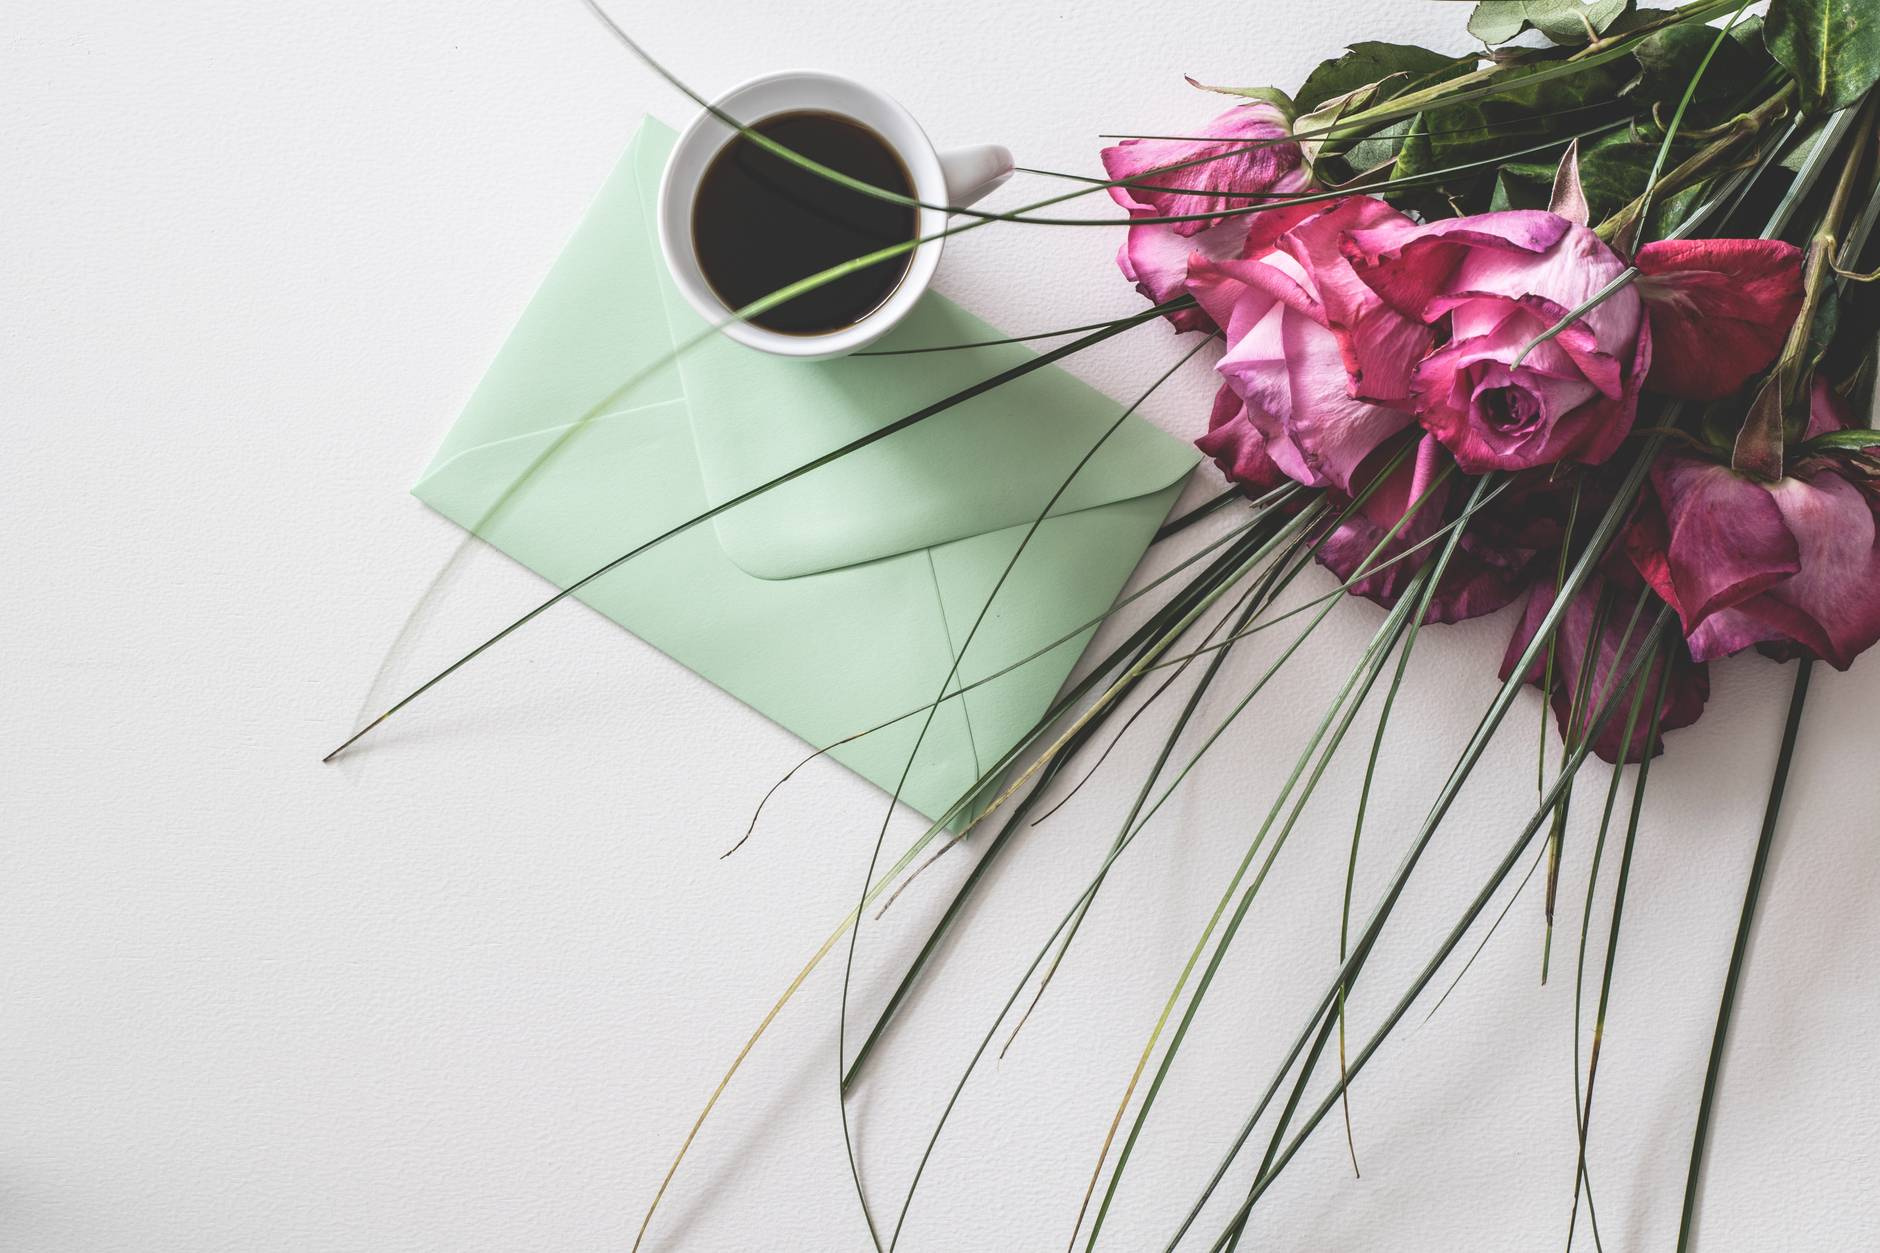 bouquet of pink flowers beside white ceramic mug and letter